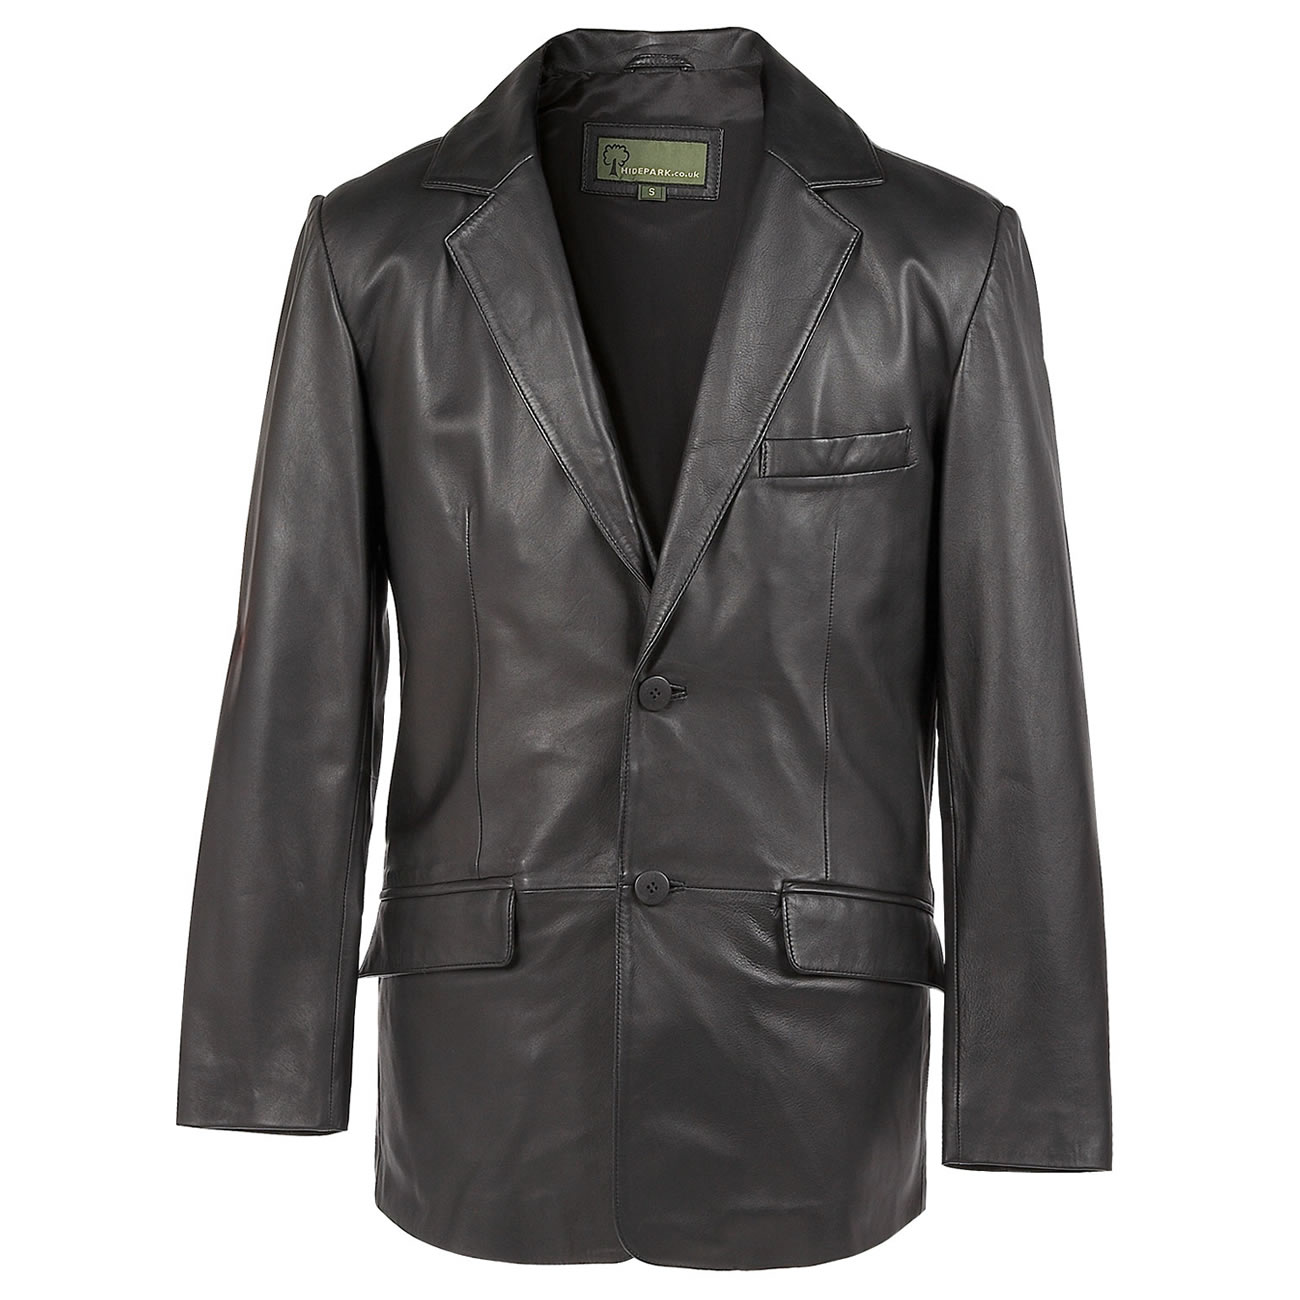 Gents Leather  button blazer black